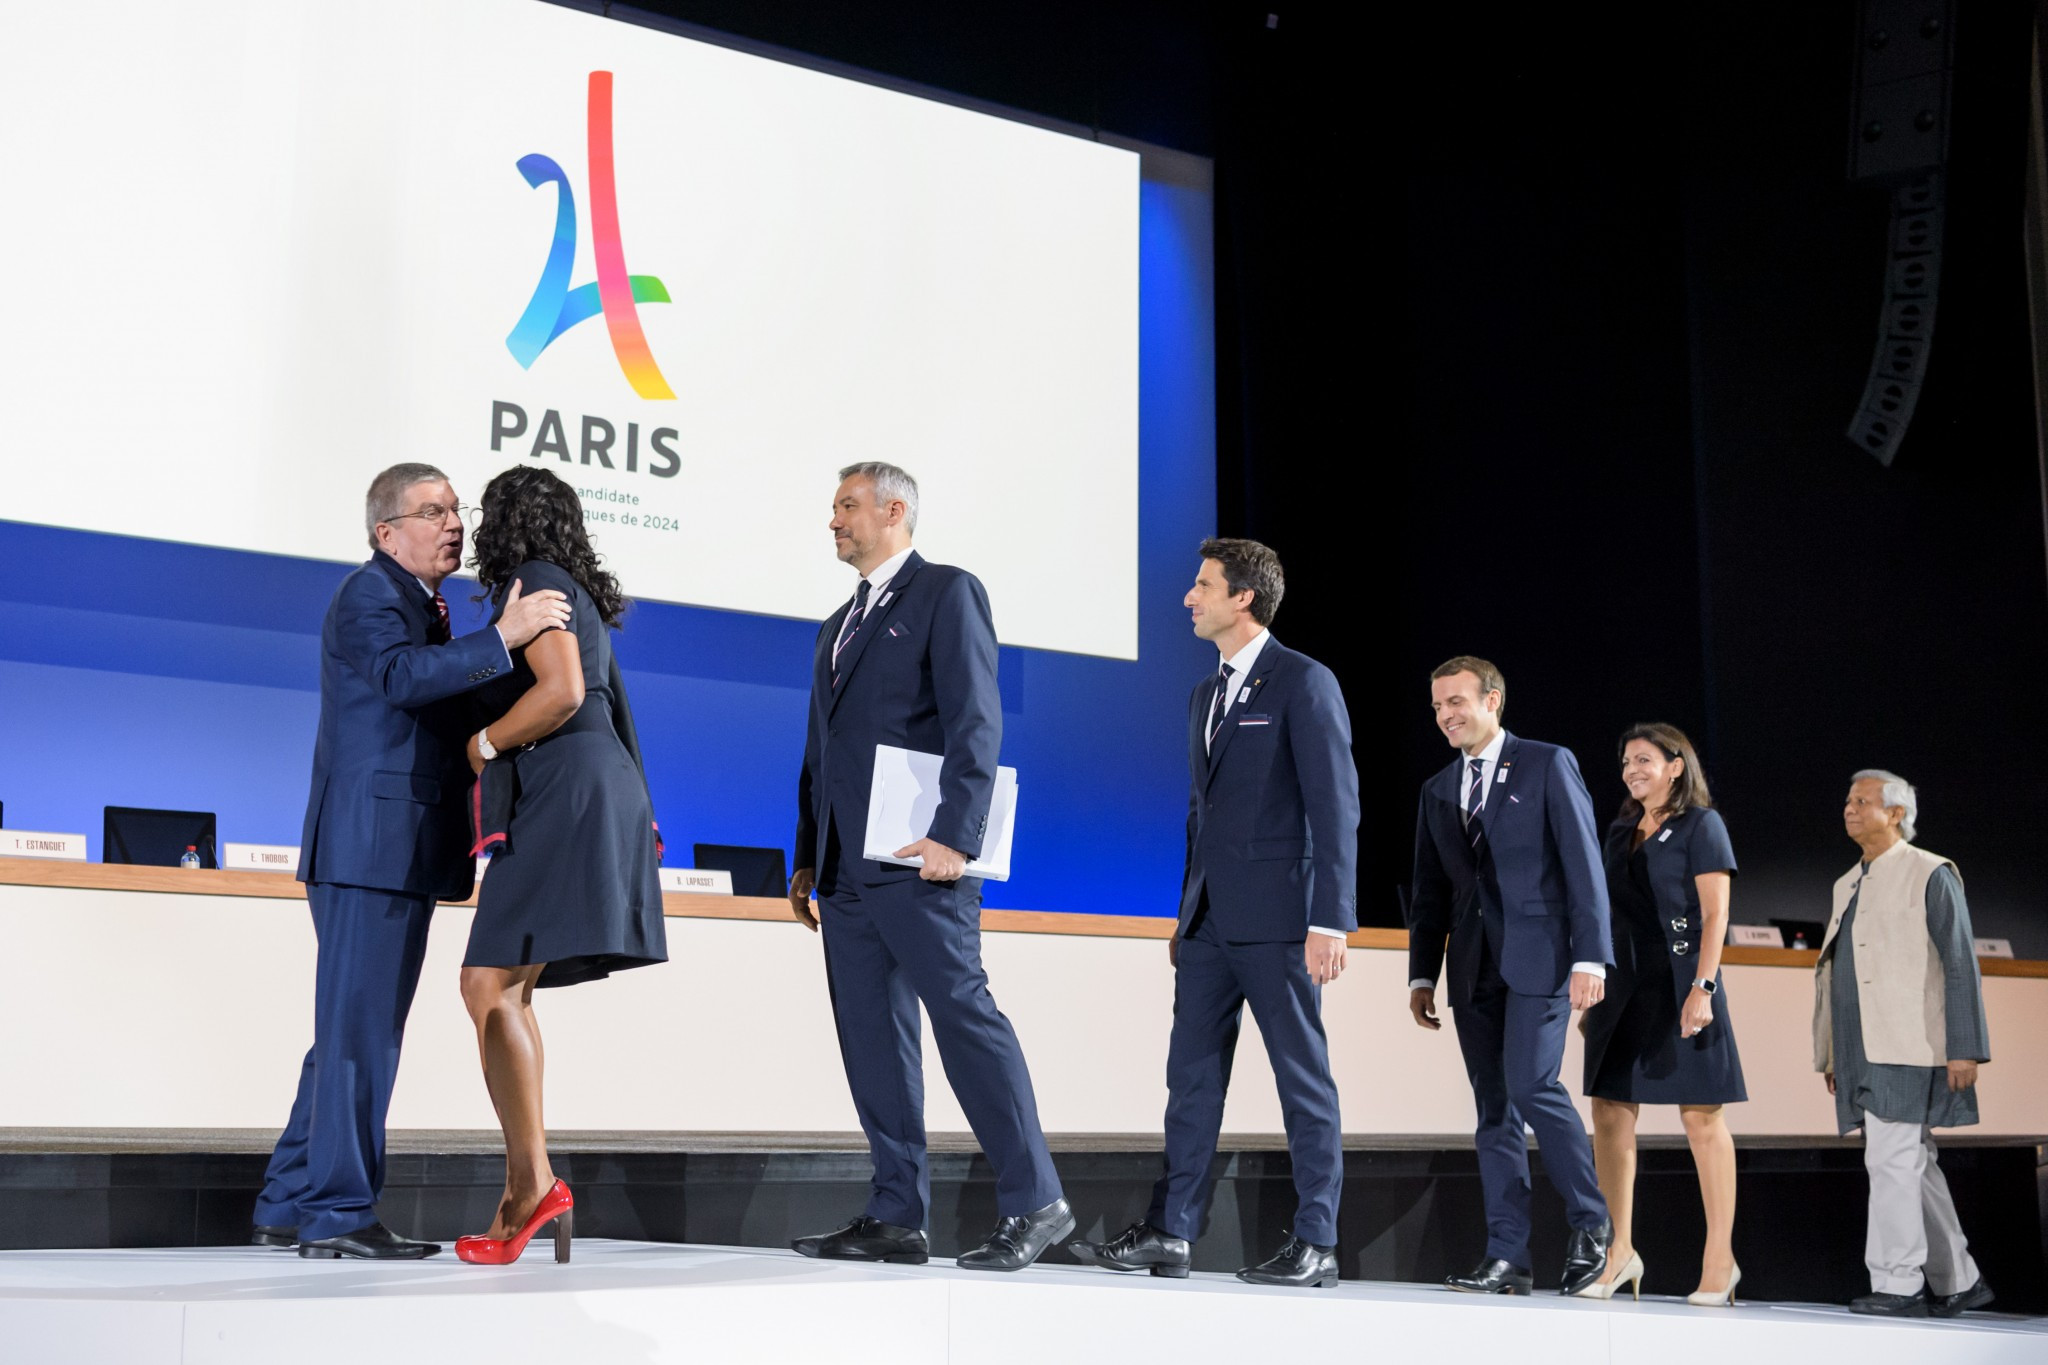 The Los Angeles 2028 deal means Paris are set to host the 2024 Olympic Games ©Getty Images